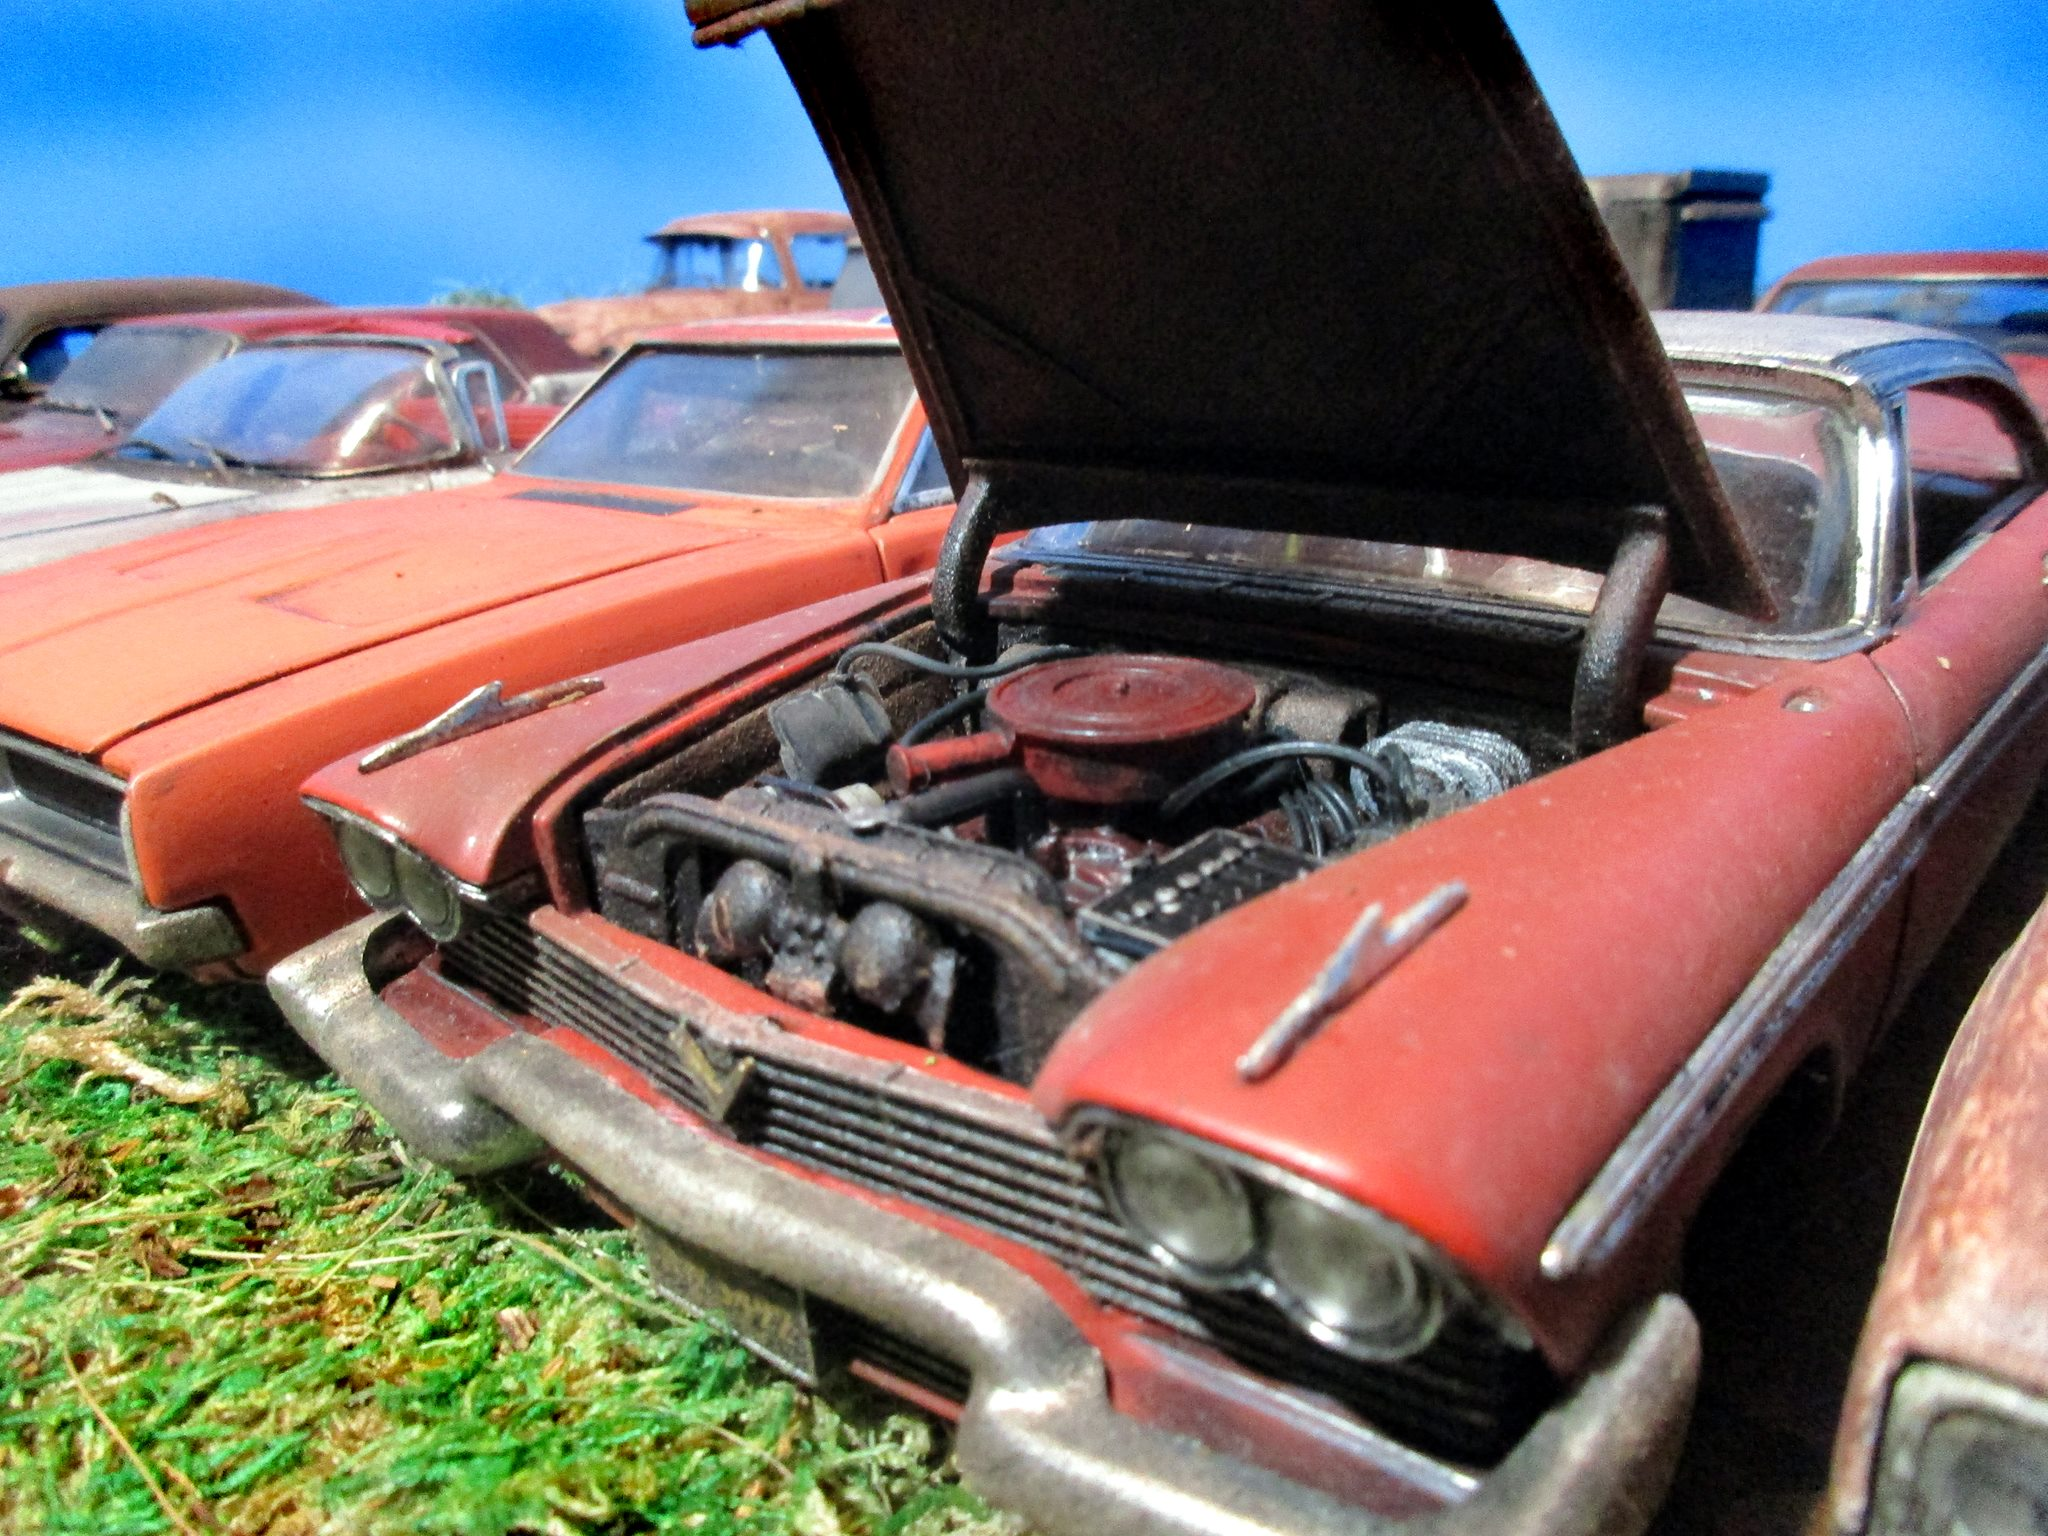 Toasted-Autos-Weathered-Die-Cast-Cars-5